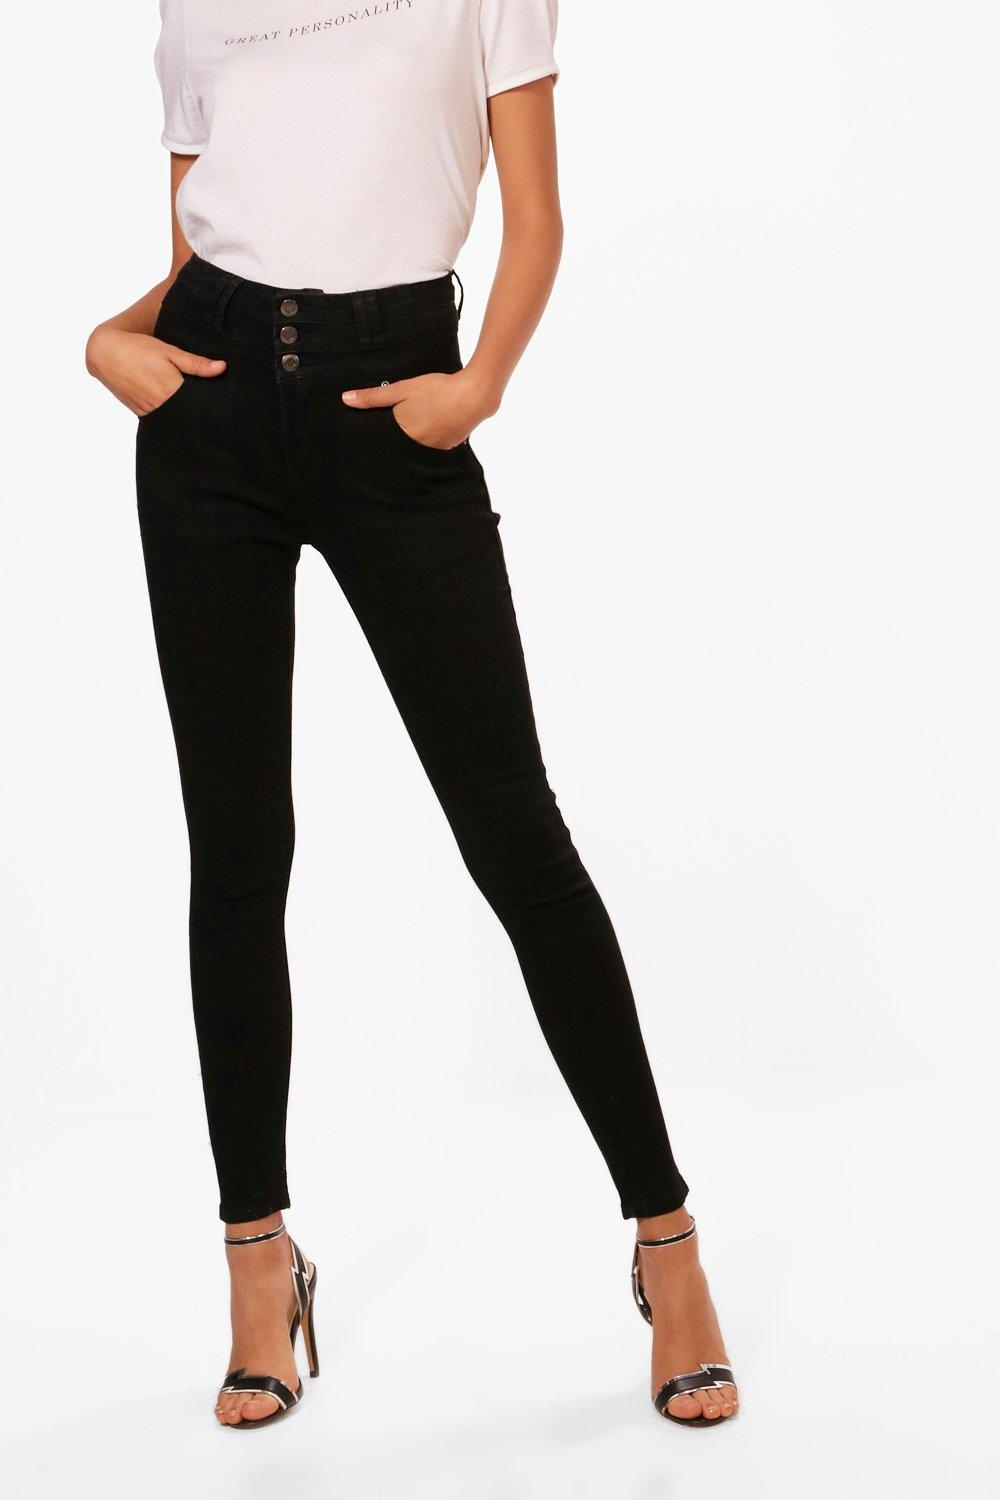 Sandy Super High Waisted Skinny Jeans at boohoo.com